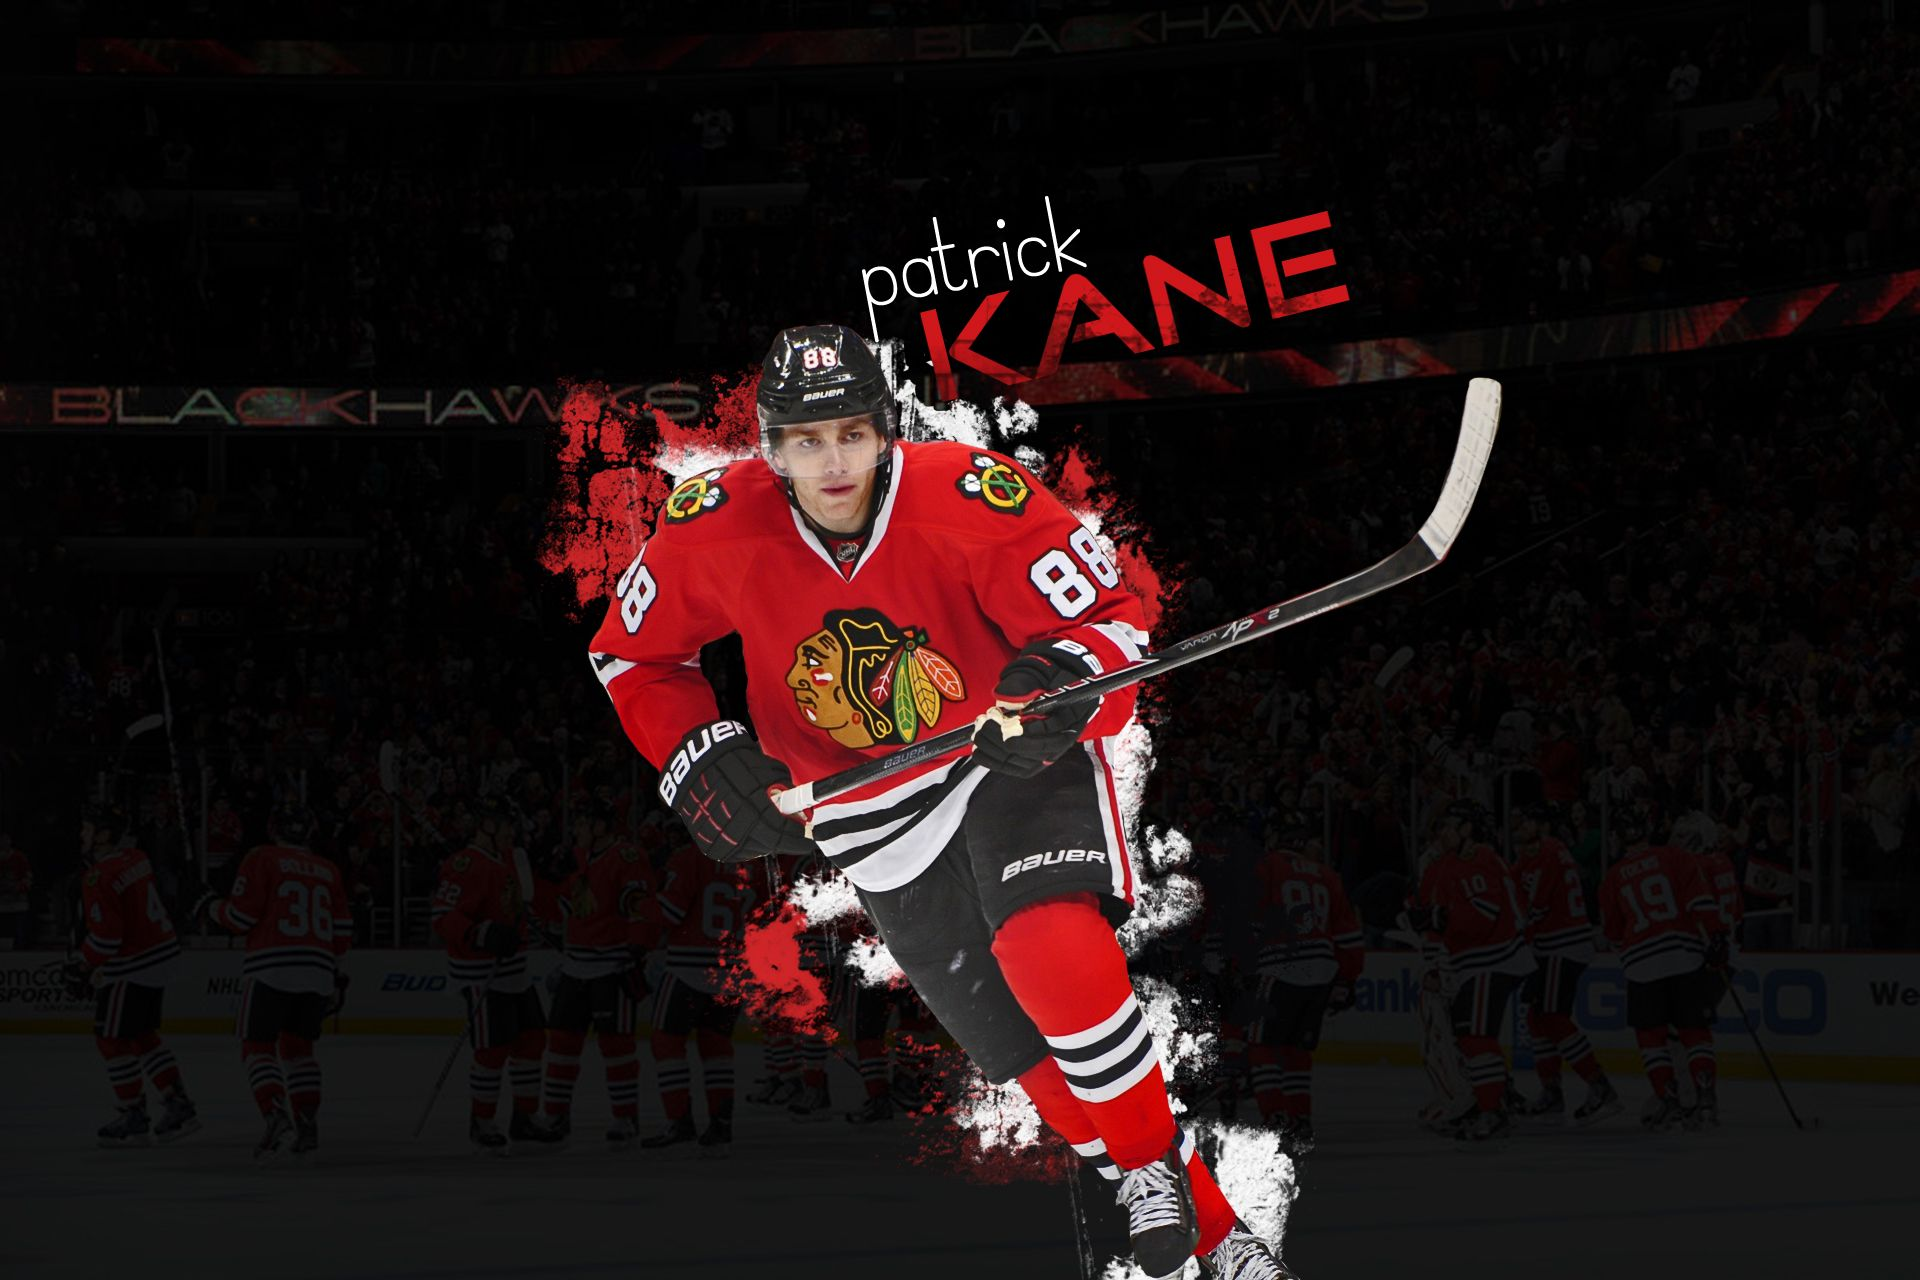 Nhl wallpaper featuring patrick kane from chicago - Nhl hockey wallpapers ...